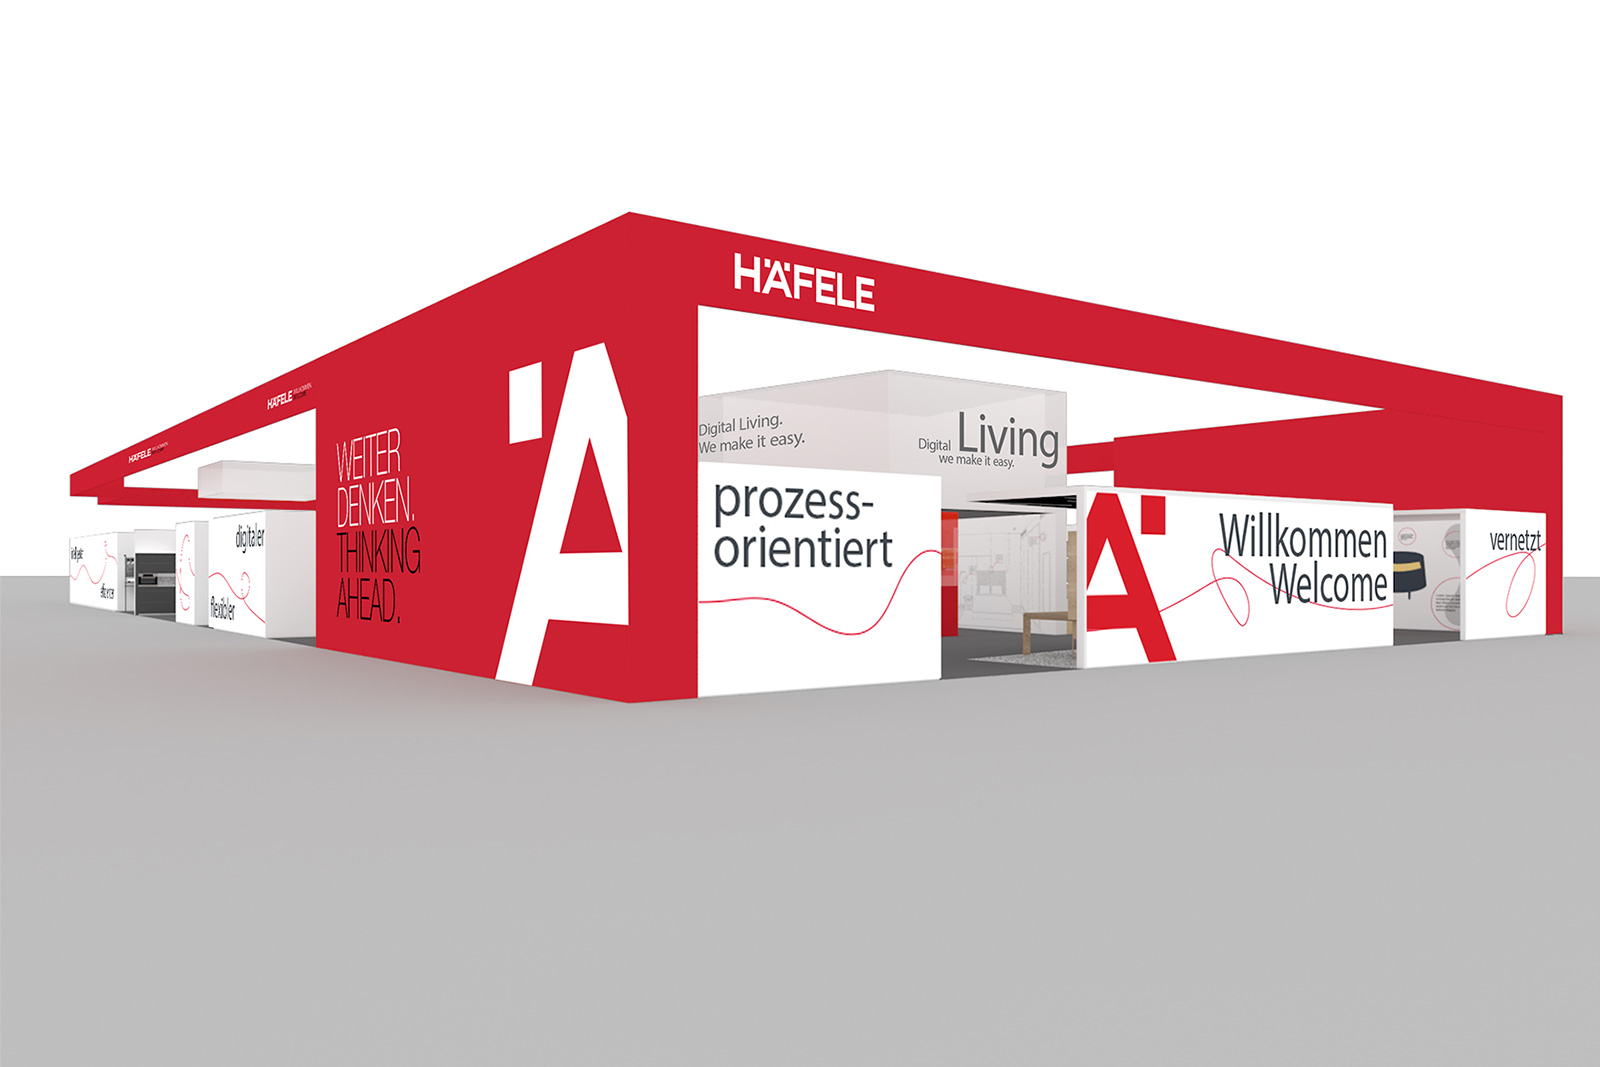 120419_fig1_Haefele_Interzum Preview